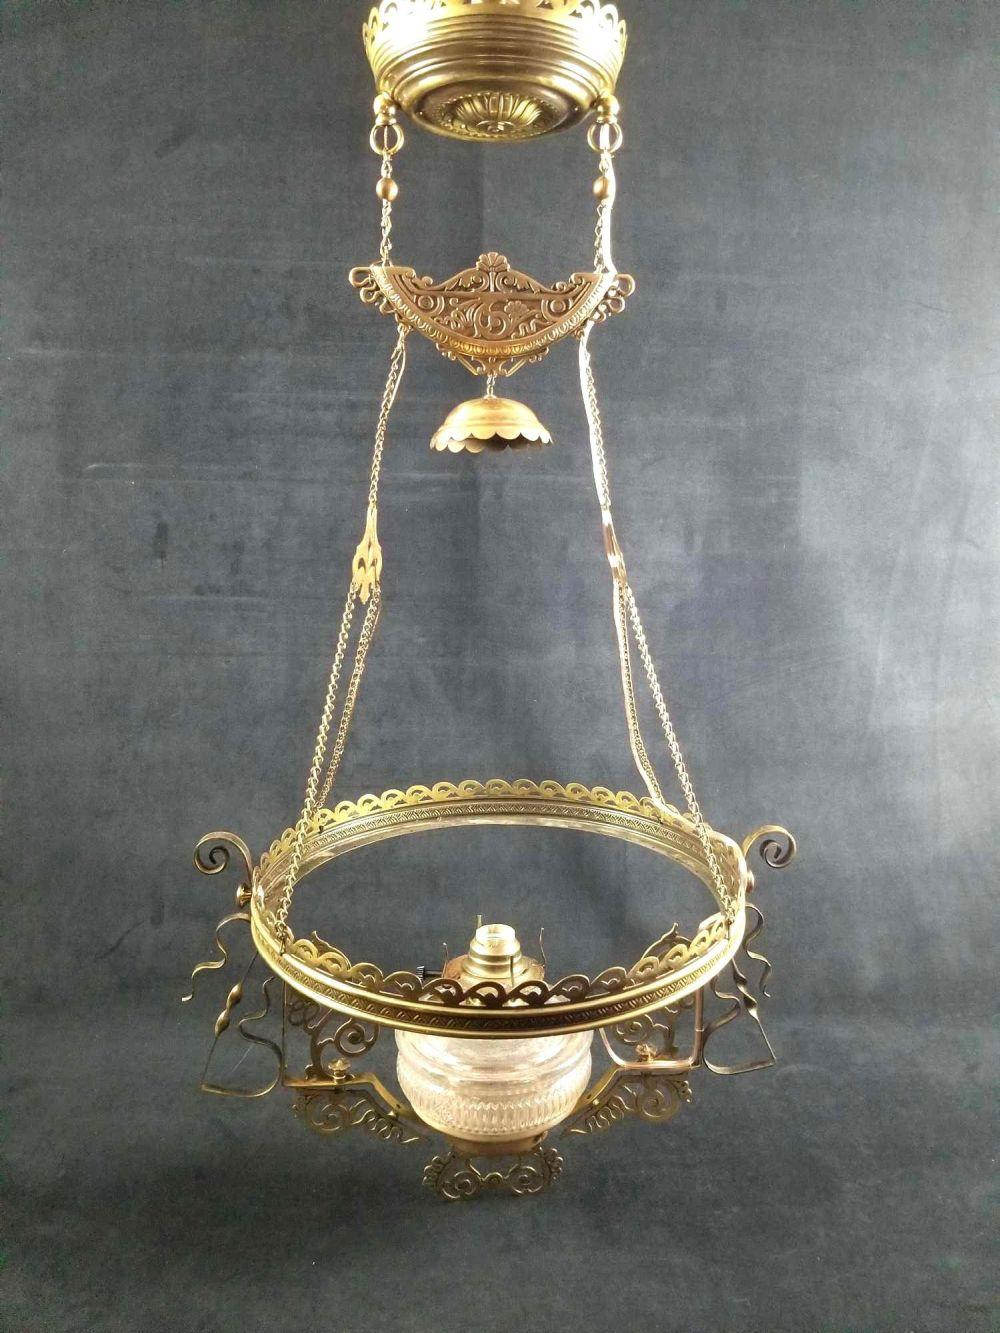 Late 1800s Solid Brass Gothic Art Deco Ornate Ceiling Hanging Light Fixture